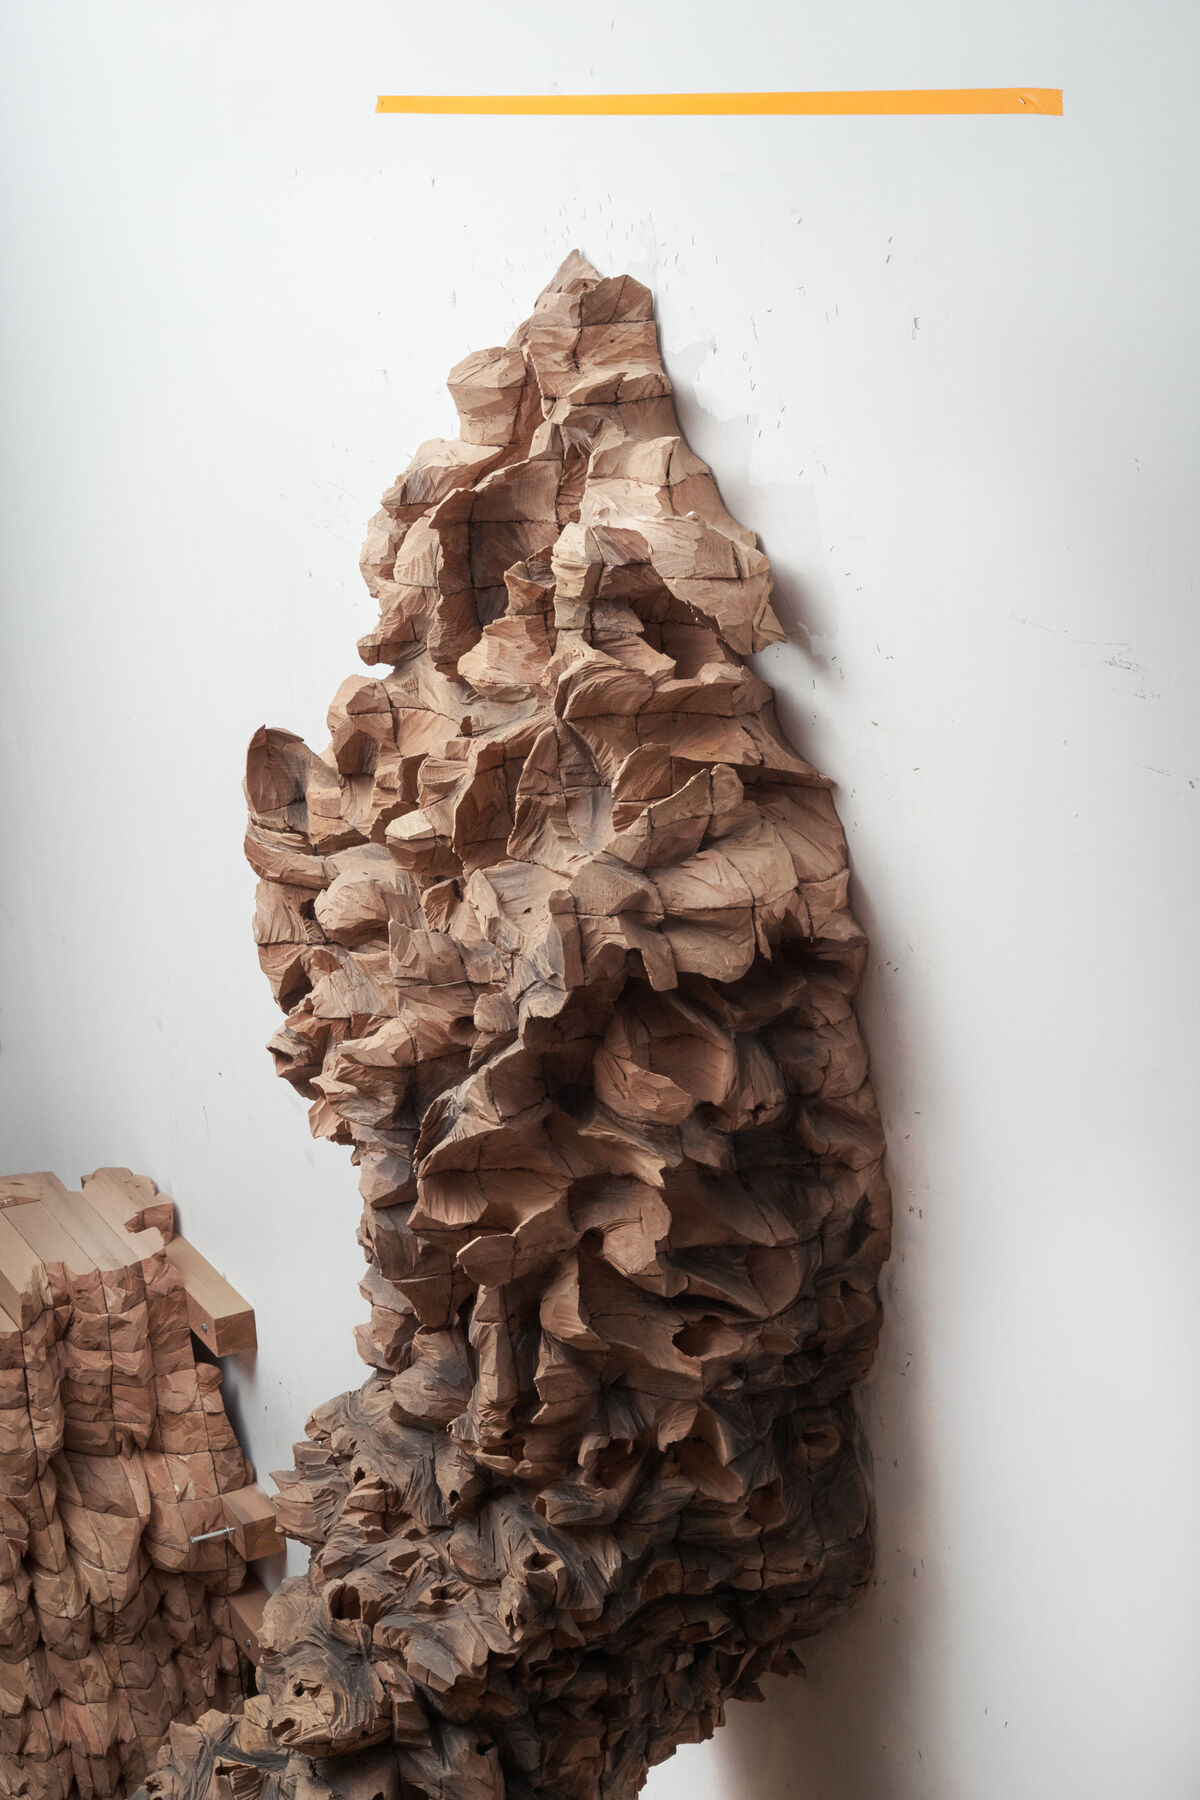 Detail of Ursula von Rydingsvard, NESTER, 2016. Photo by Alex John Beck for Artsy.